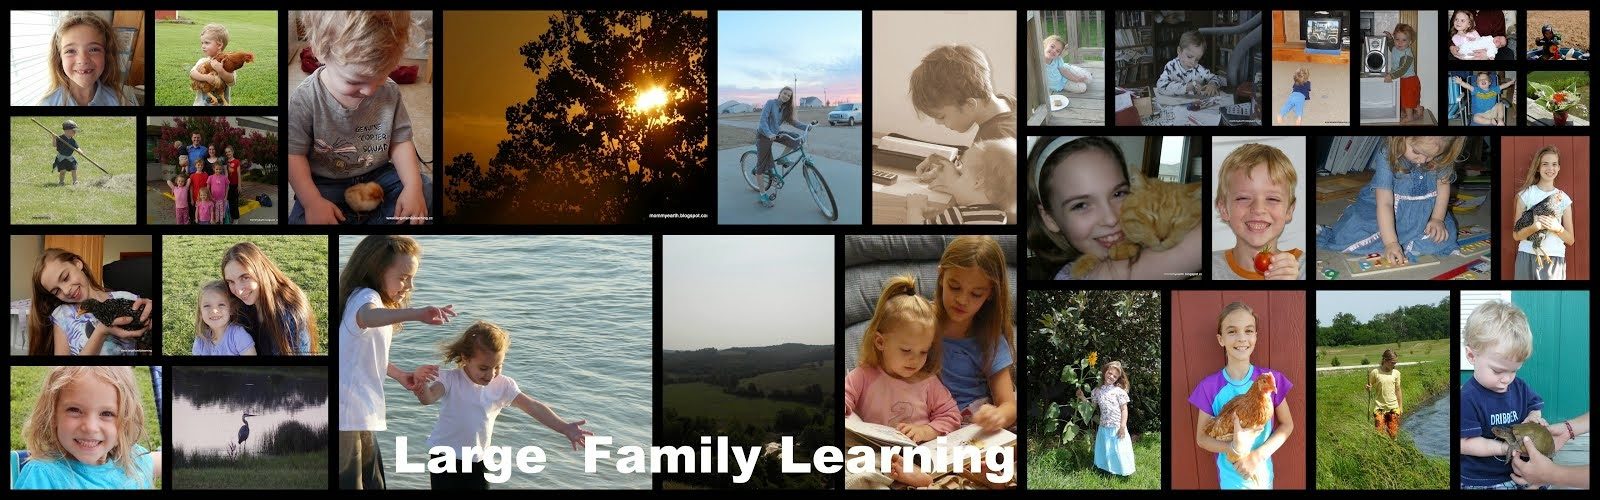 Large Family Learning